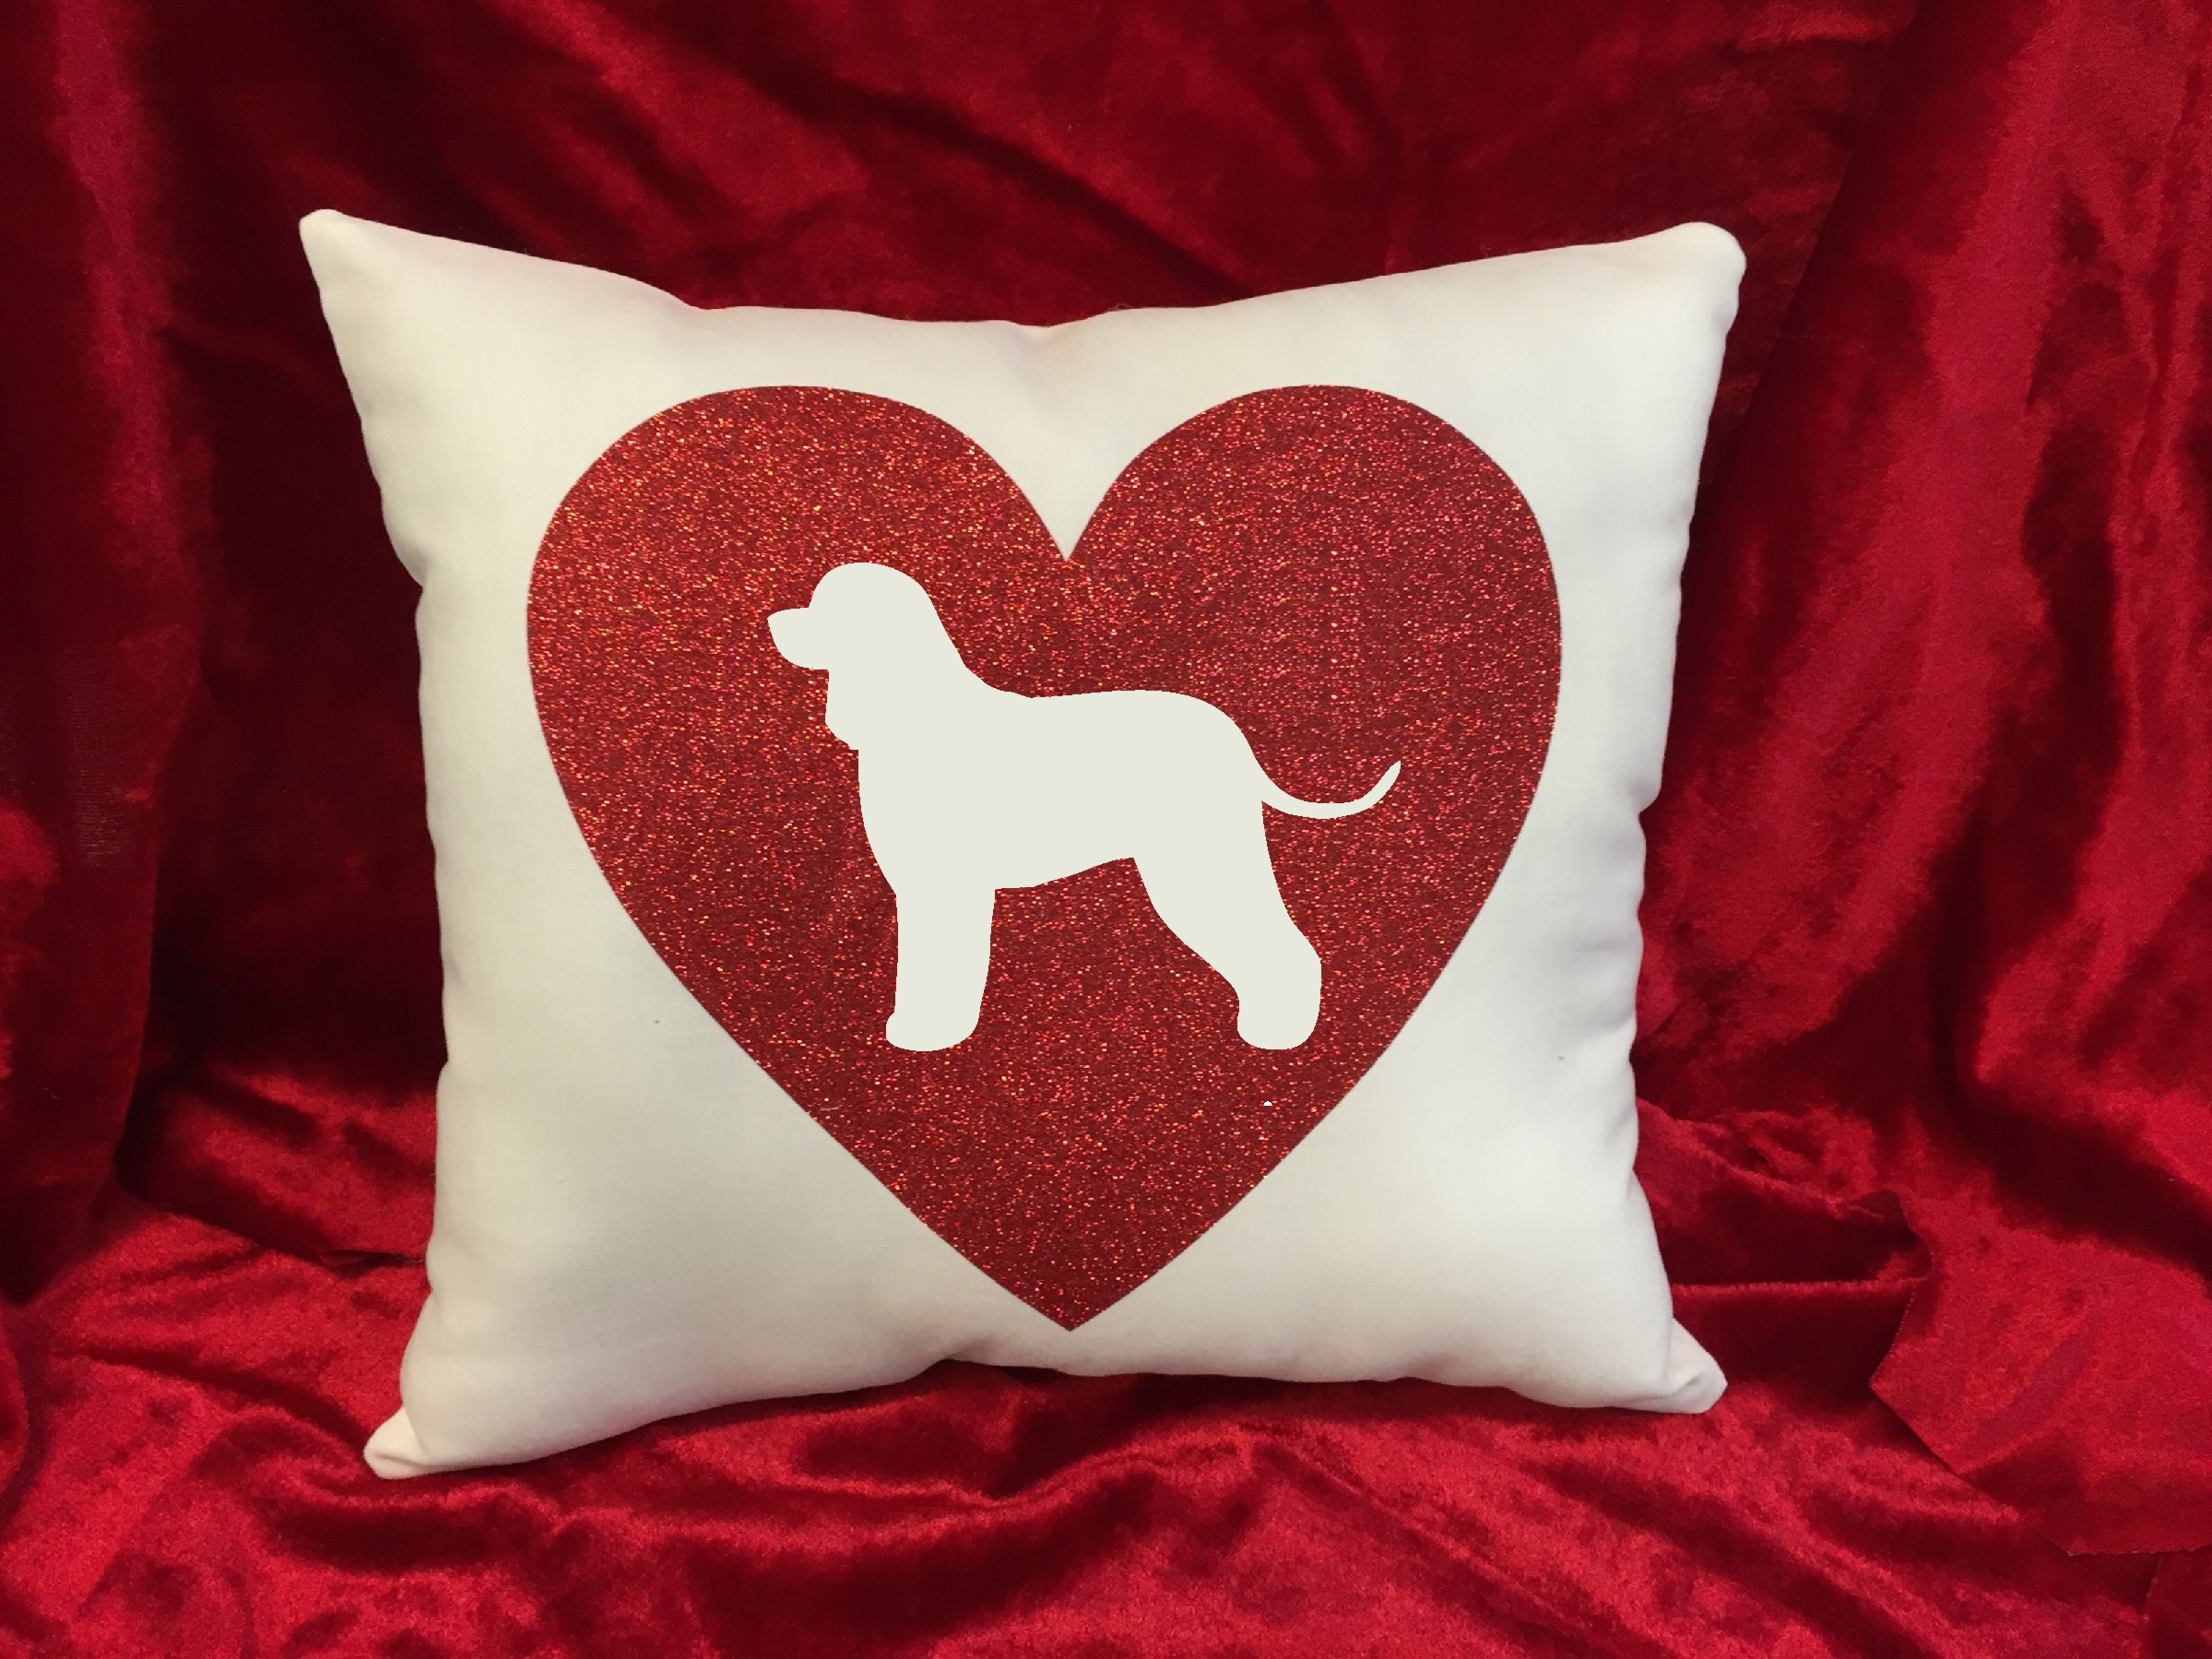 Dogs - Throw Pillow - Irish Water Spaniel